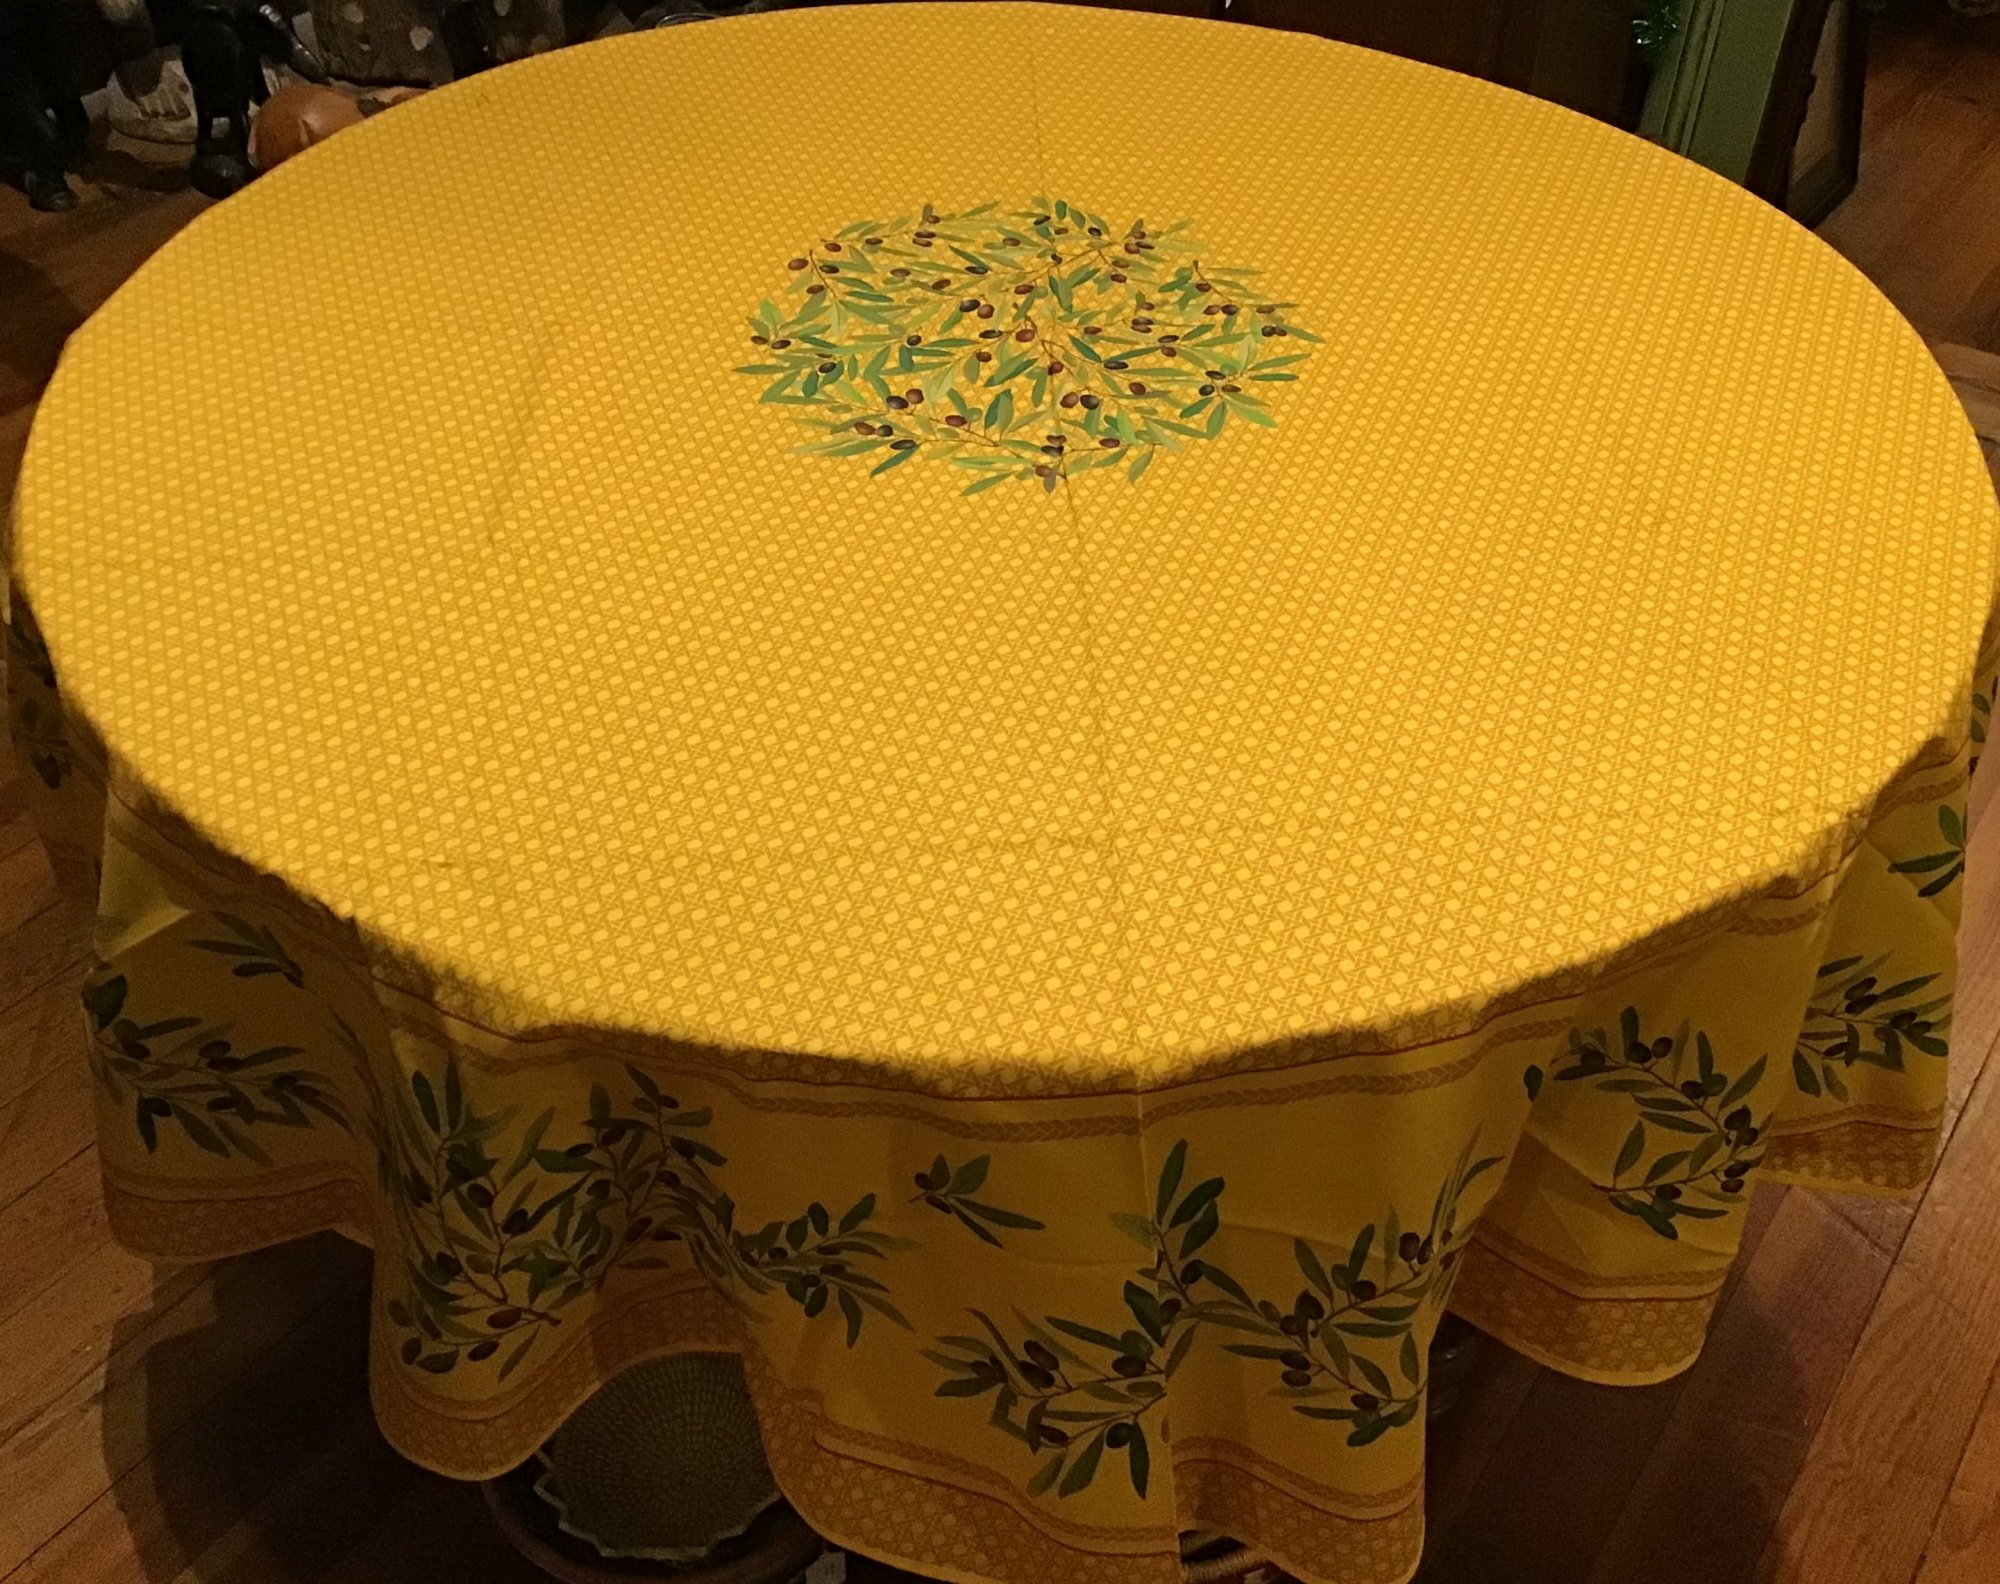 70 French Acrylic-Coated Round Tablecloth Yellow Basket Weave